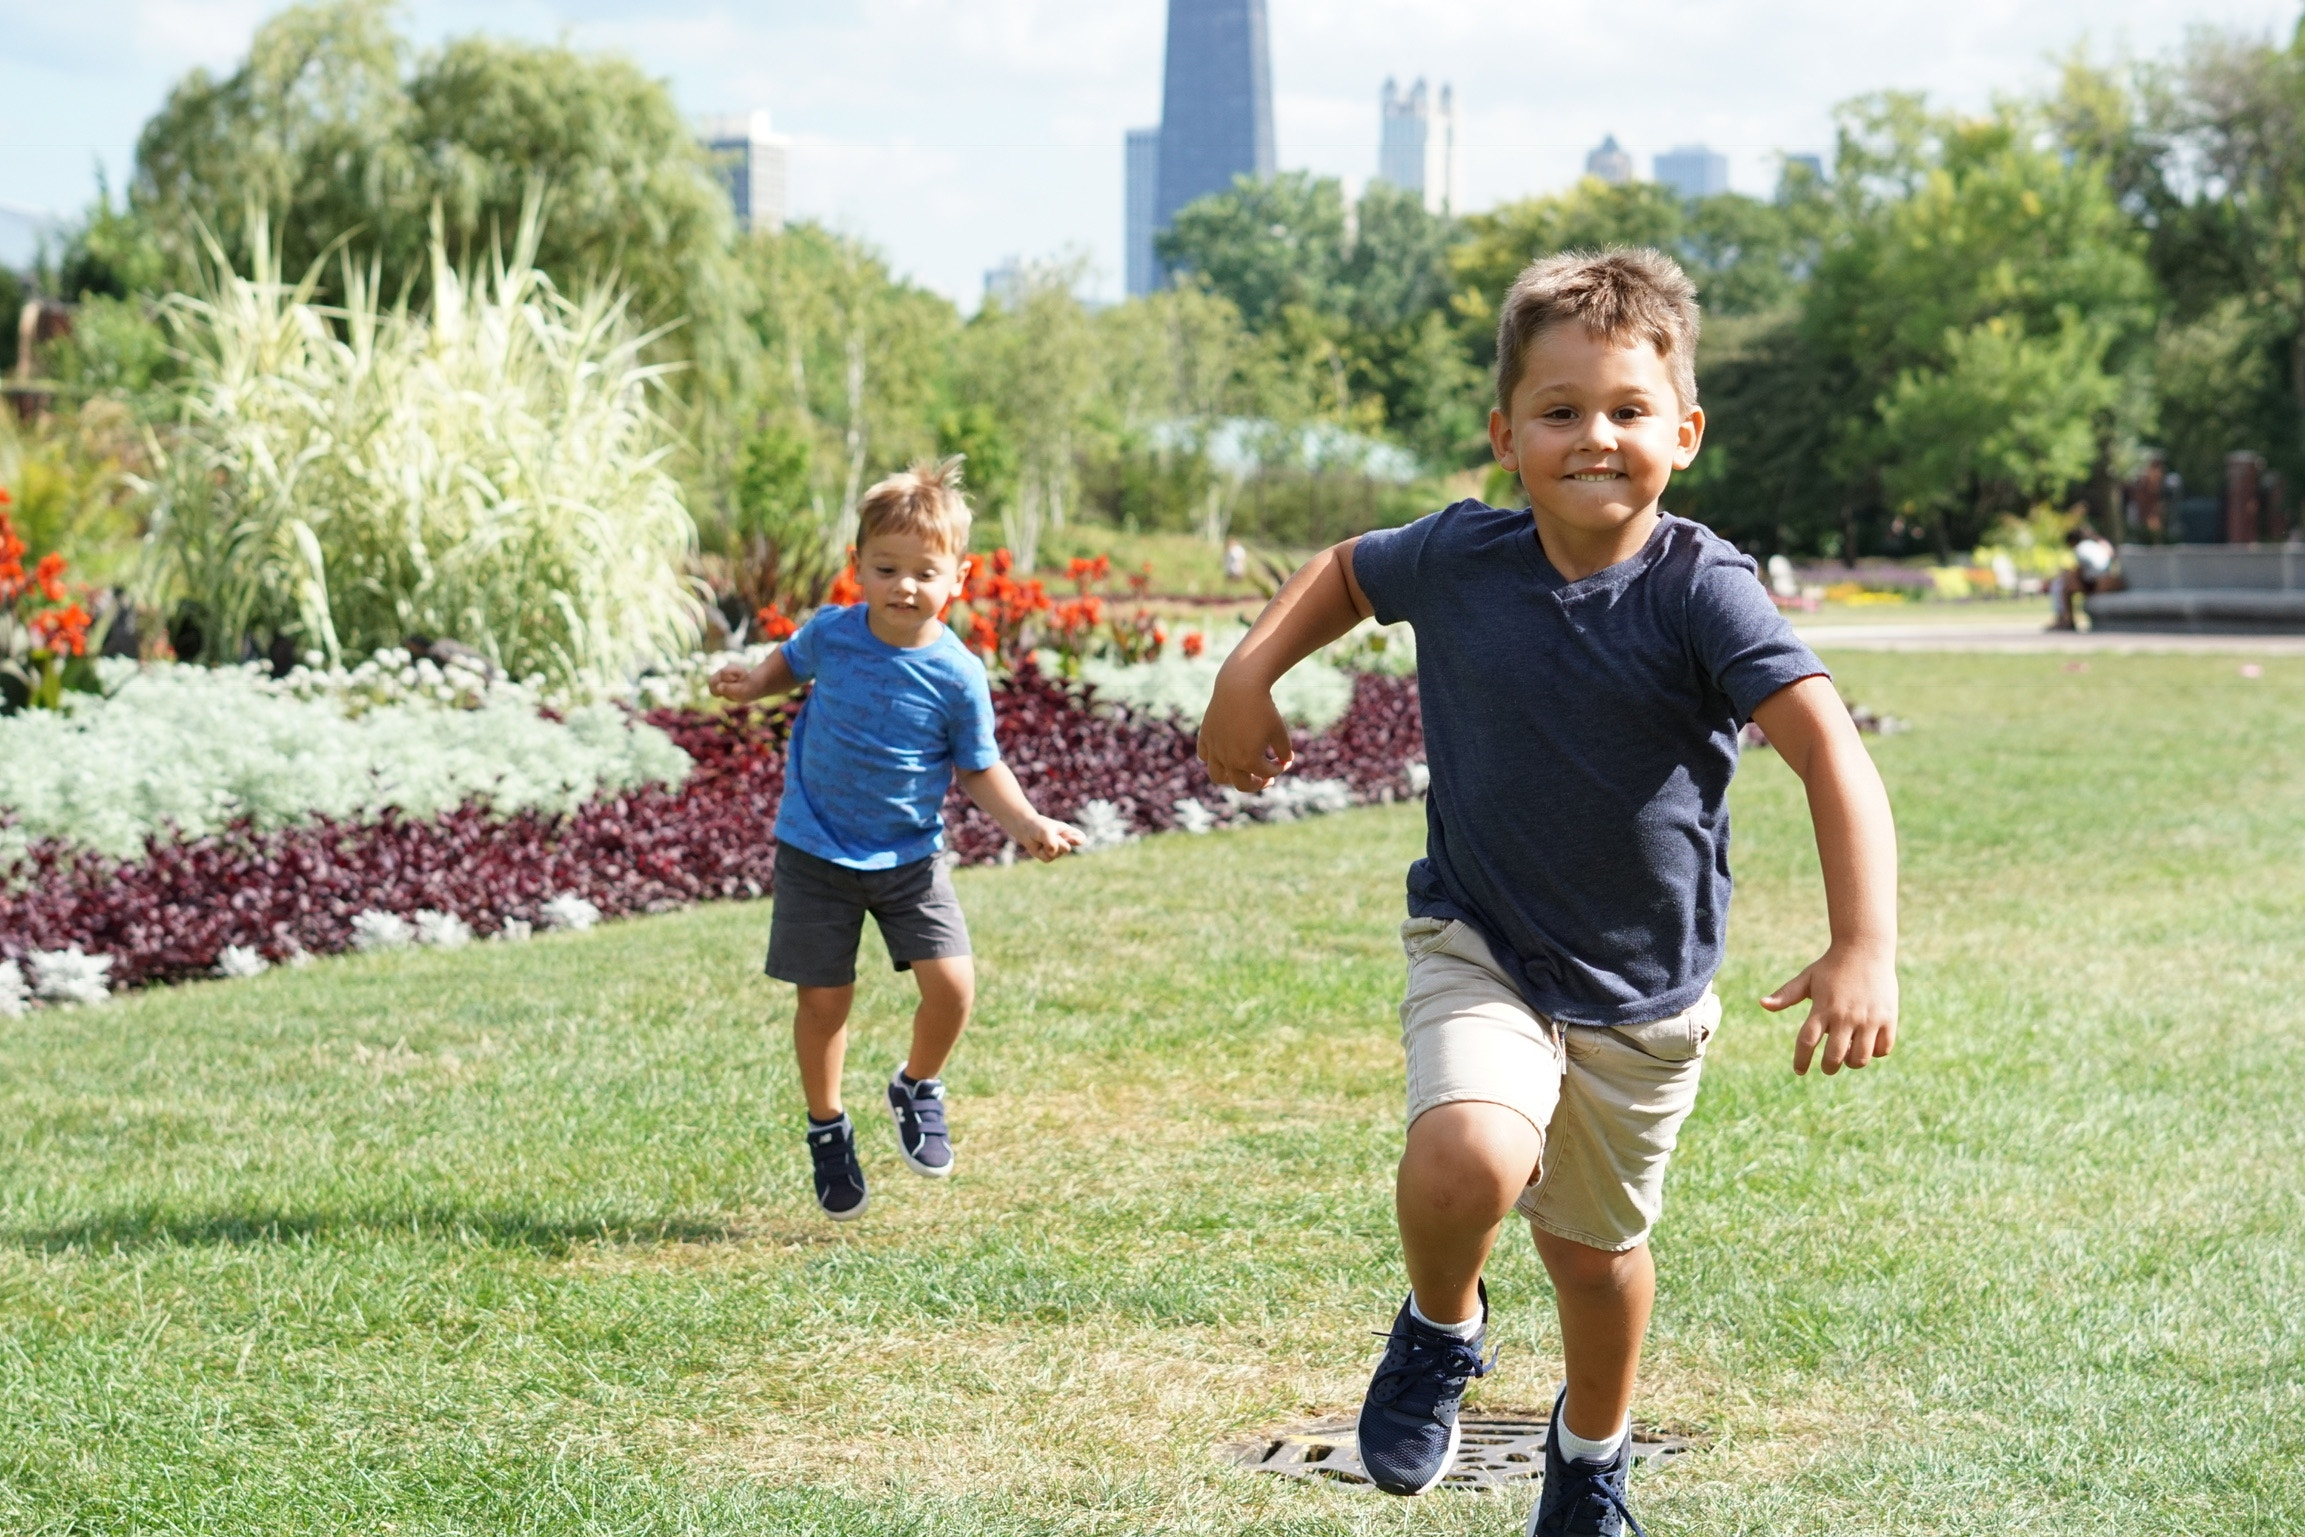 How To Be a Good Digital Citizen Outdoors This Summer